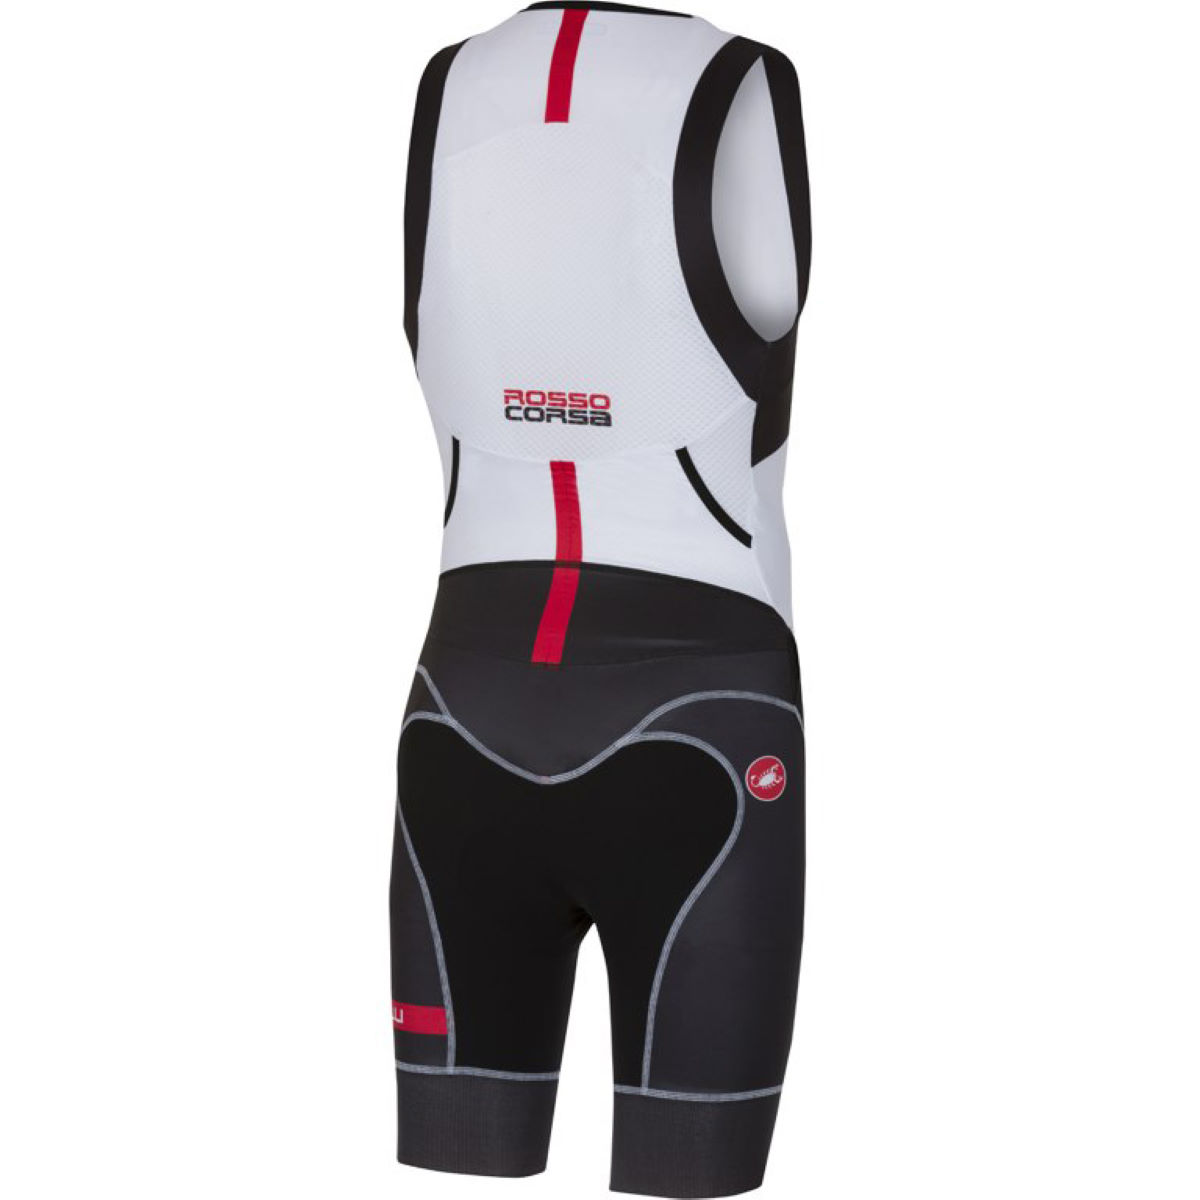 Nukeproof Blackline Storage Bib Shorts - Ltd Edition   Bib Shorts